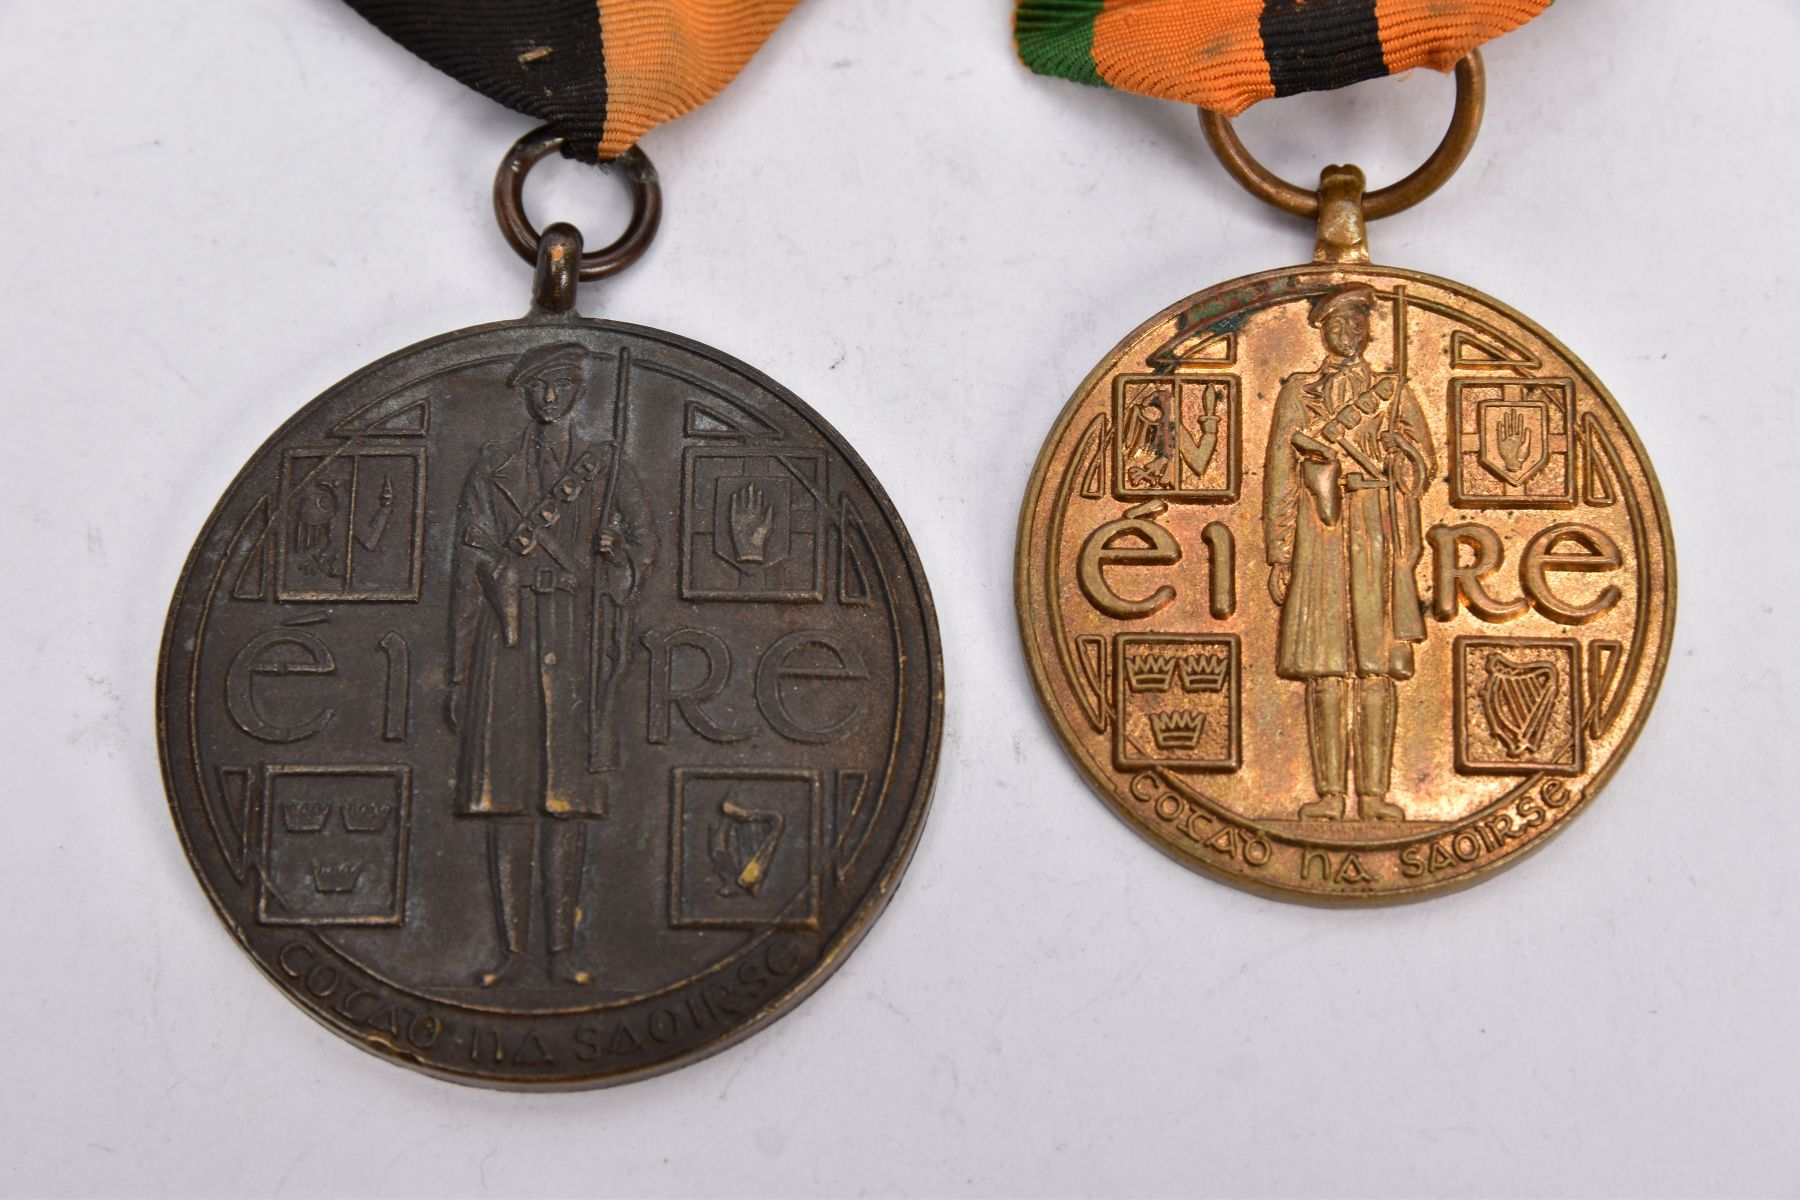 'IRISH WAR OF INDEPENDANCE MEDALS' both with wearing bar clasps, but believed to be later produced - Image 2 of 4